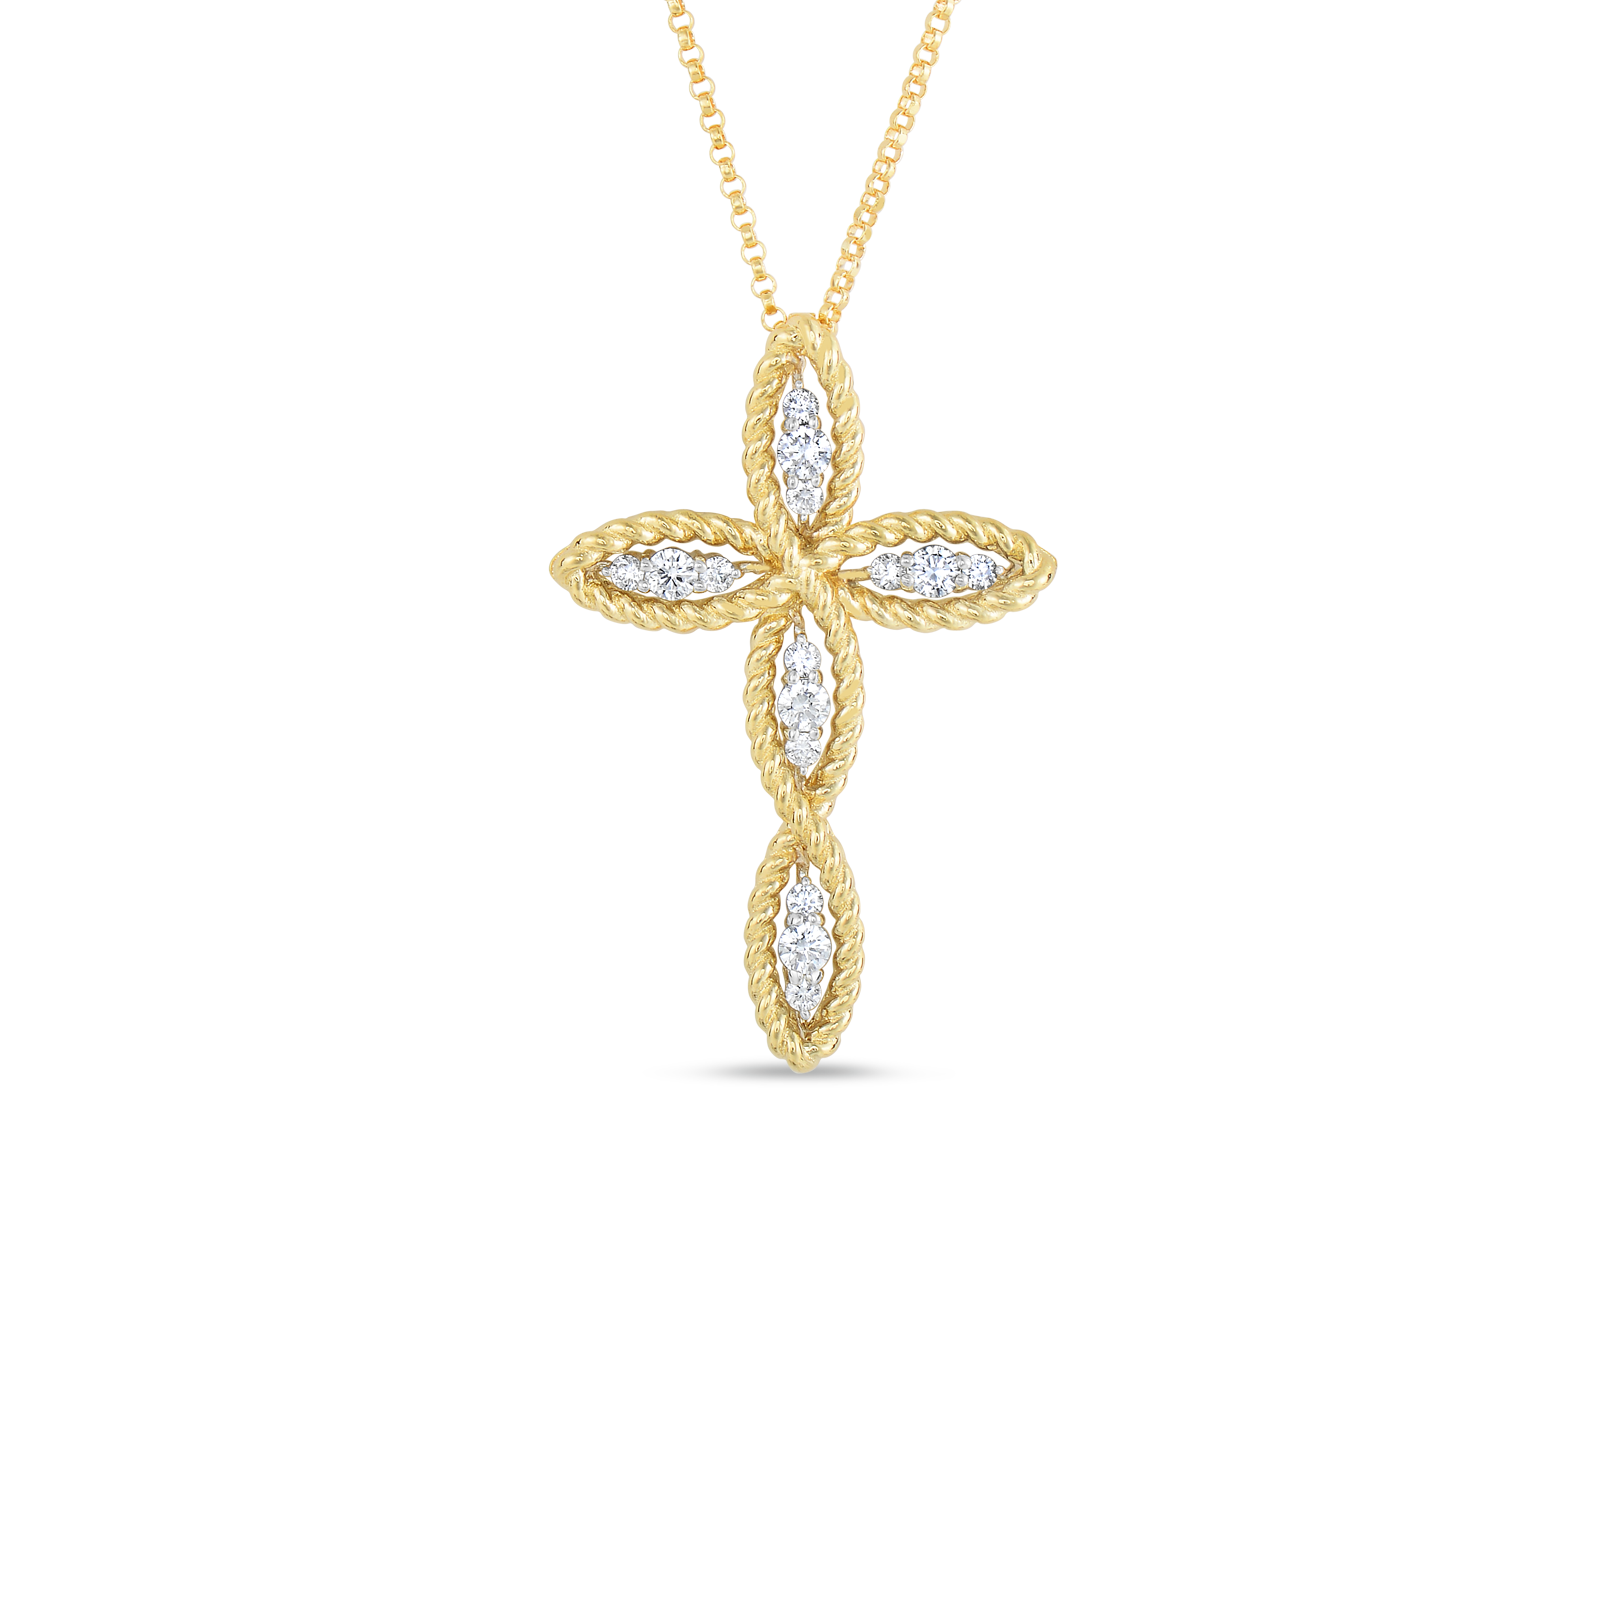 coin diamond gold diamonds the with italian station inch product necklace roberto s yellow copy by pendant